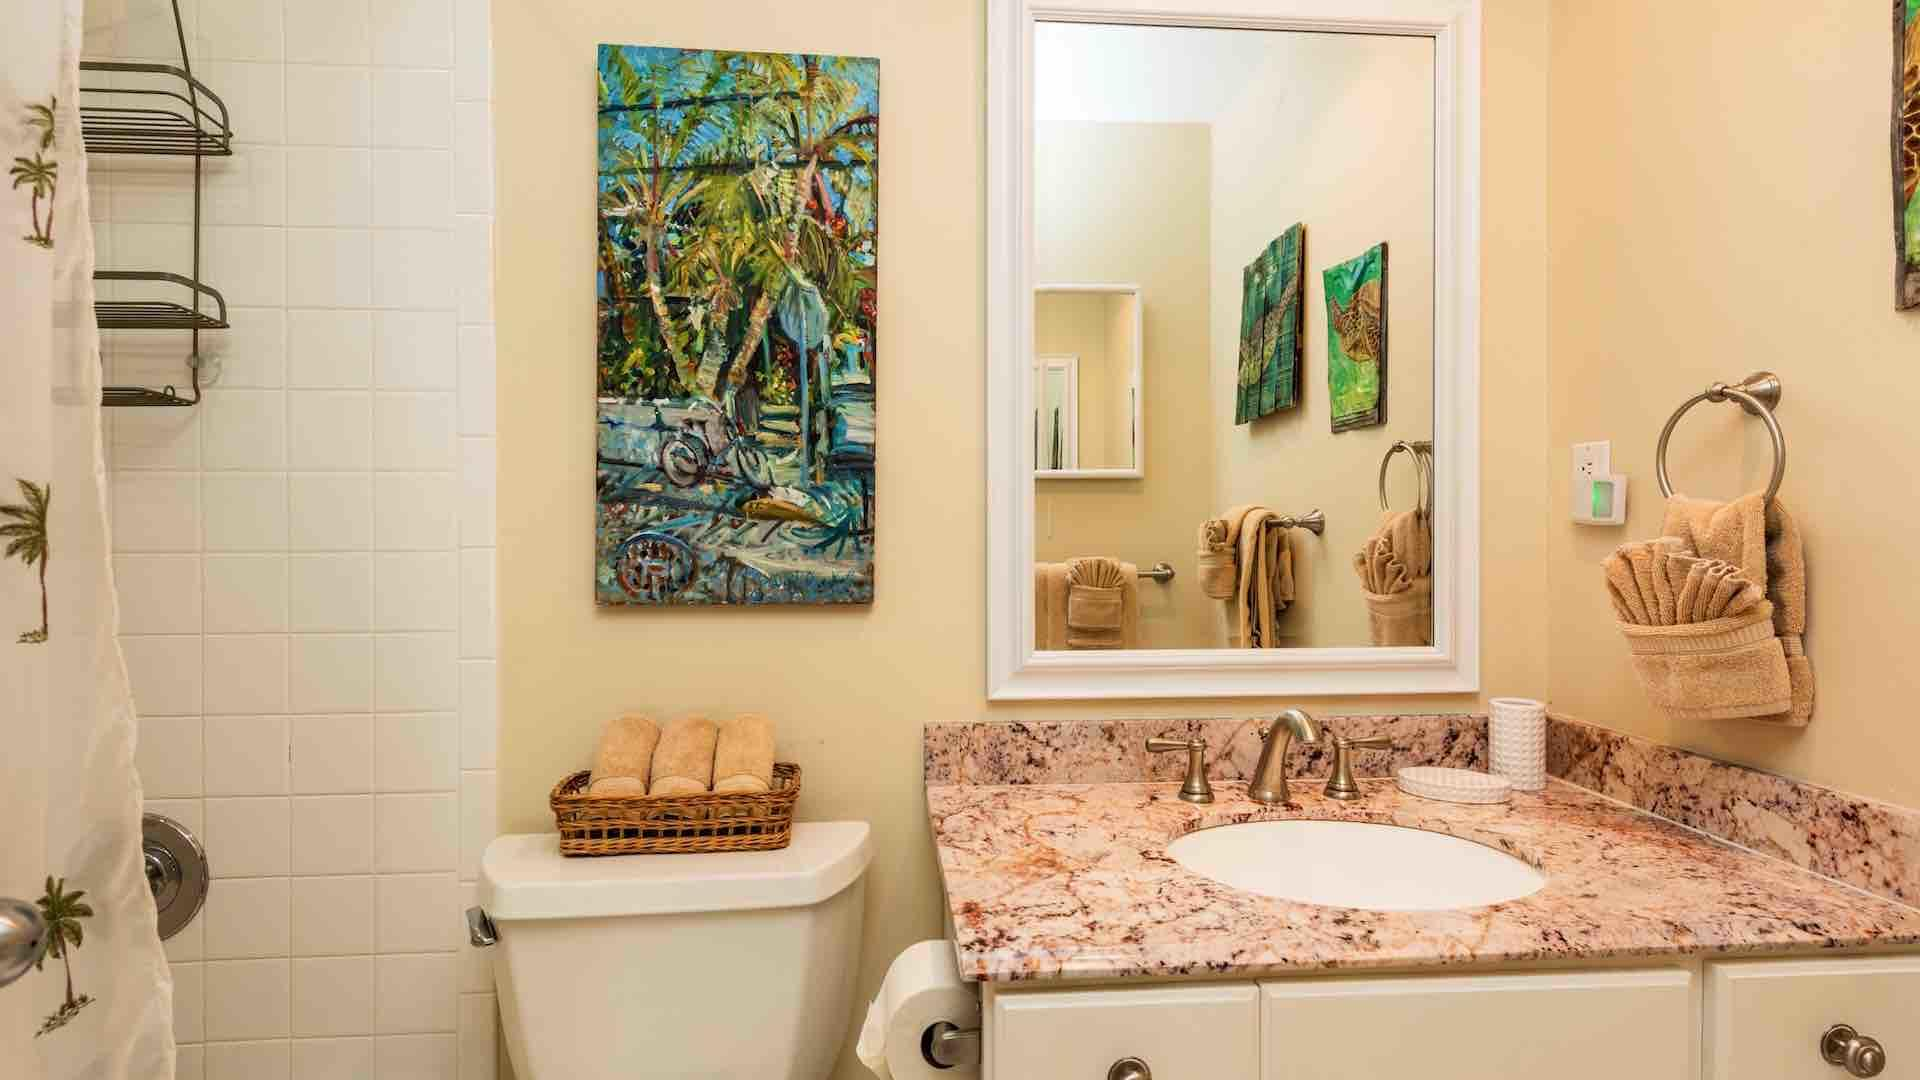 The master bathroom is en suite, with a shower and tub combo...